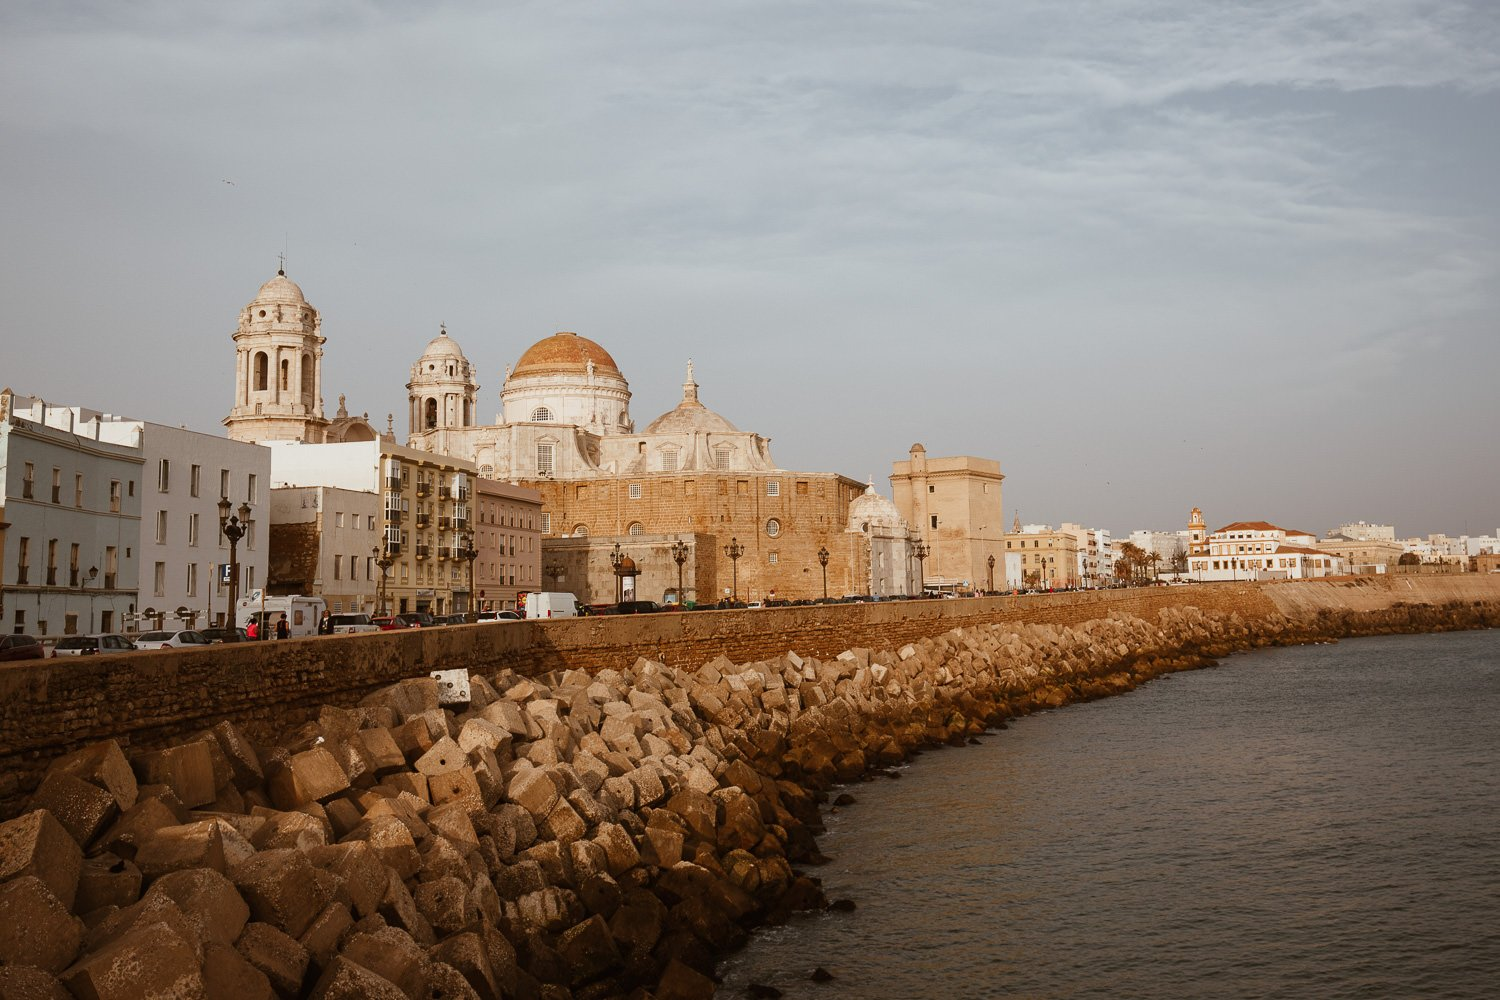 Cádiz Cathedral and old town in the late afternoon sun.